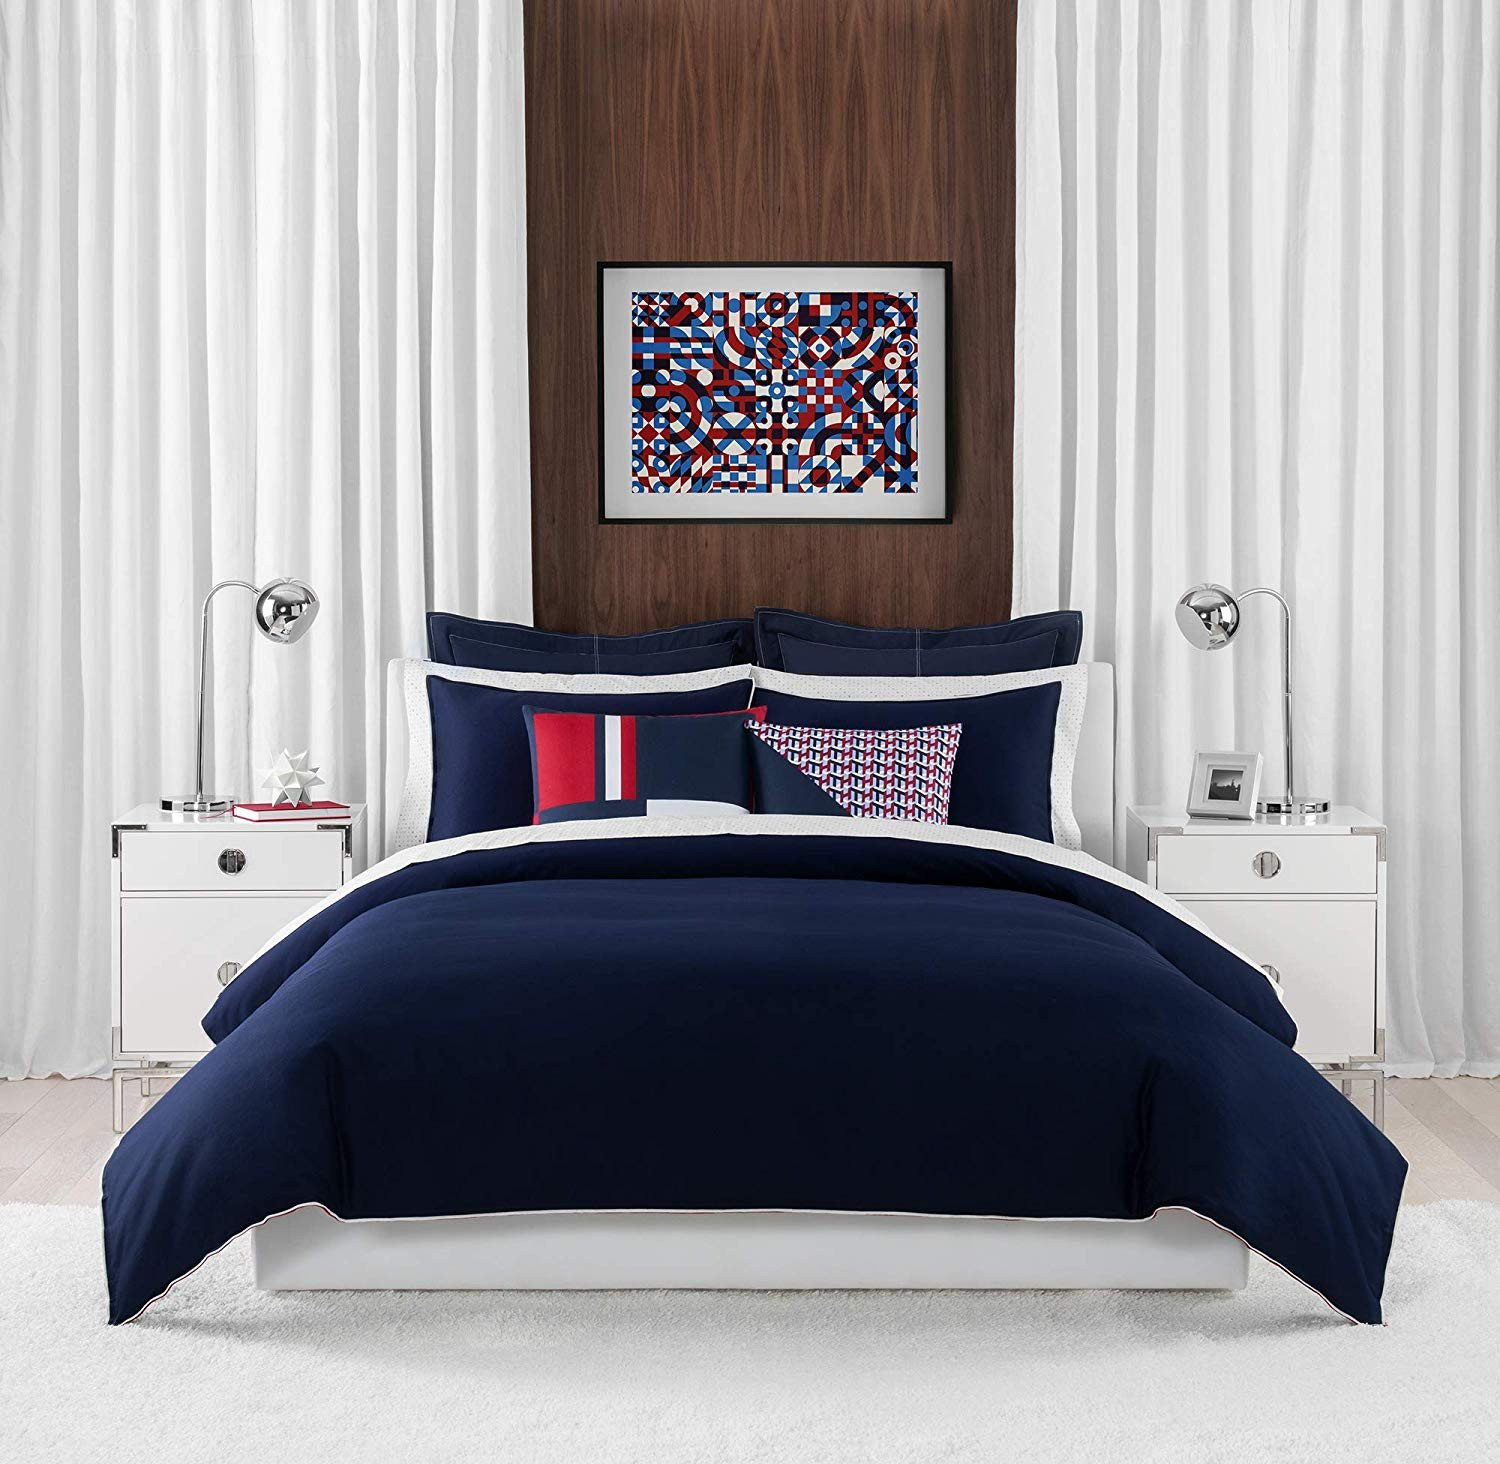 Bedroom In A Bag with Curtains Elegant Amazon tommy Hilfiger Classic Pique Bedding Collection